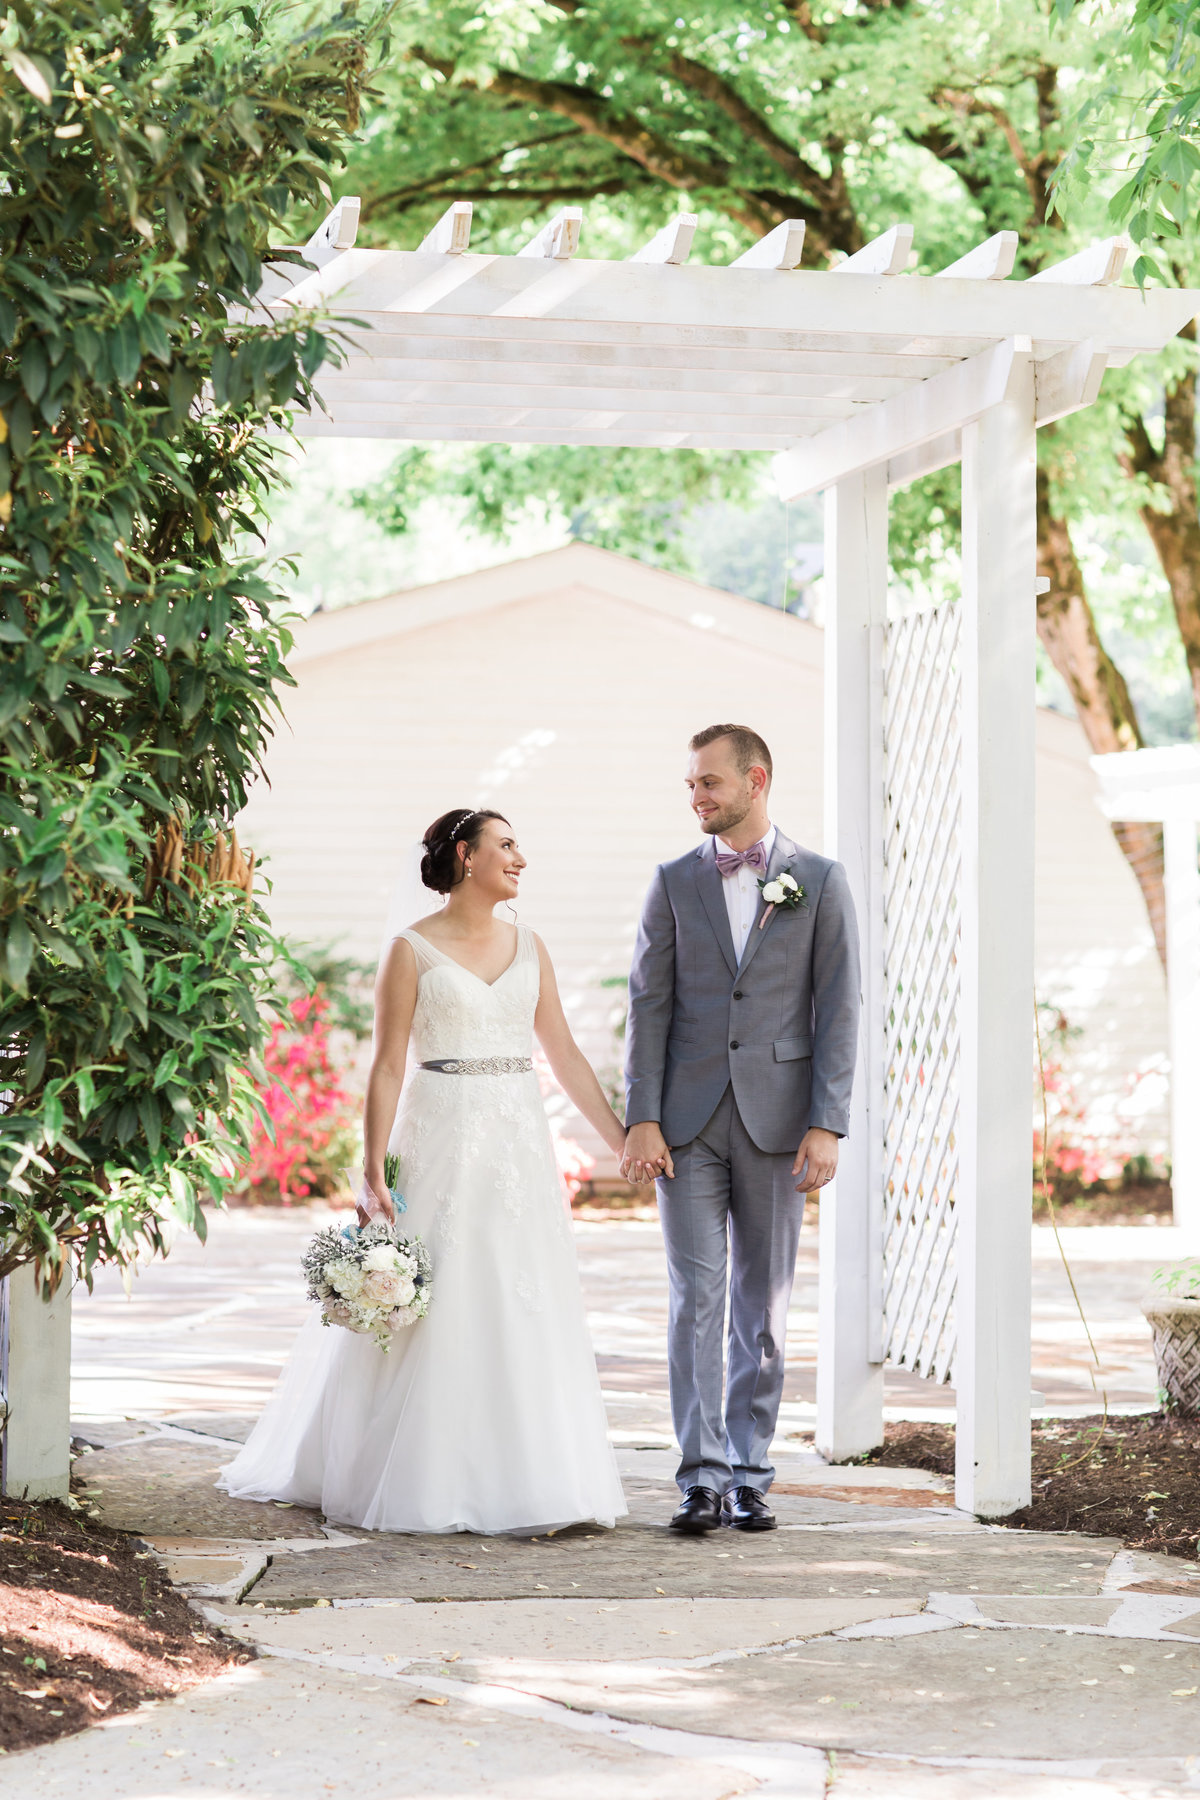 Danielle-Defayette-Photography-Daras-Garden-Knoxville-Wedding-343